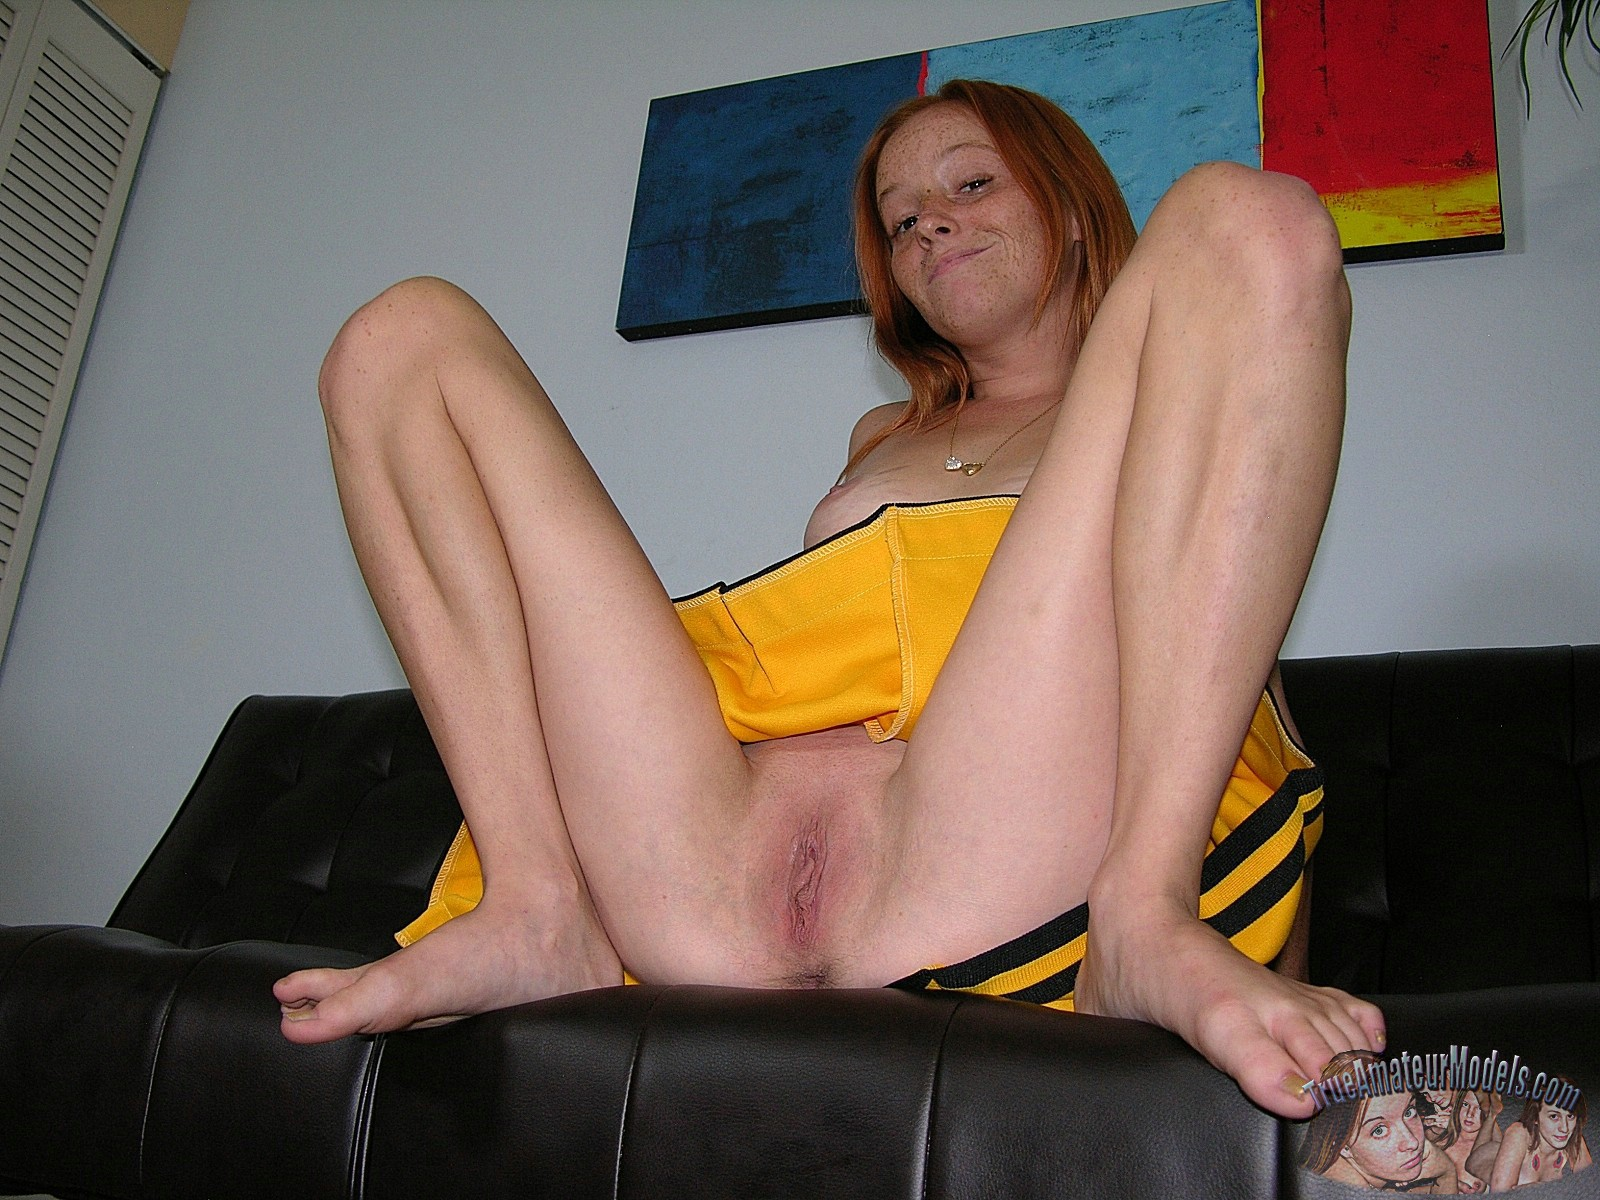 For support. Redhead cheerleaders pussy that